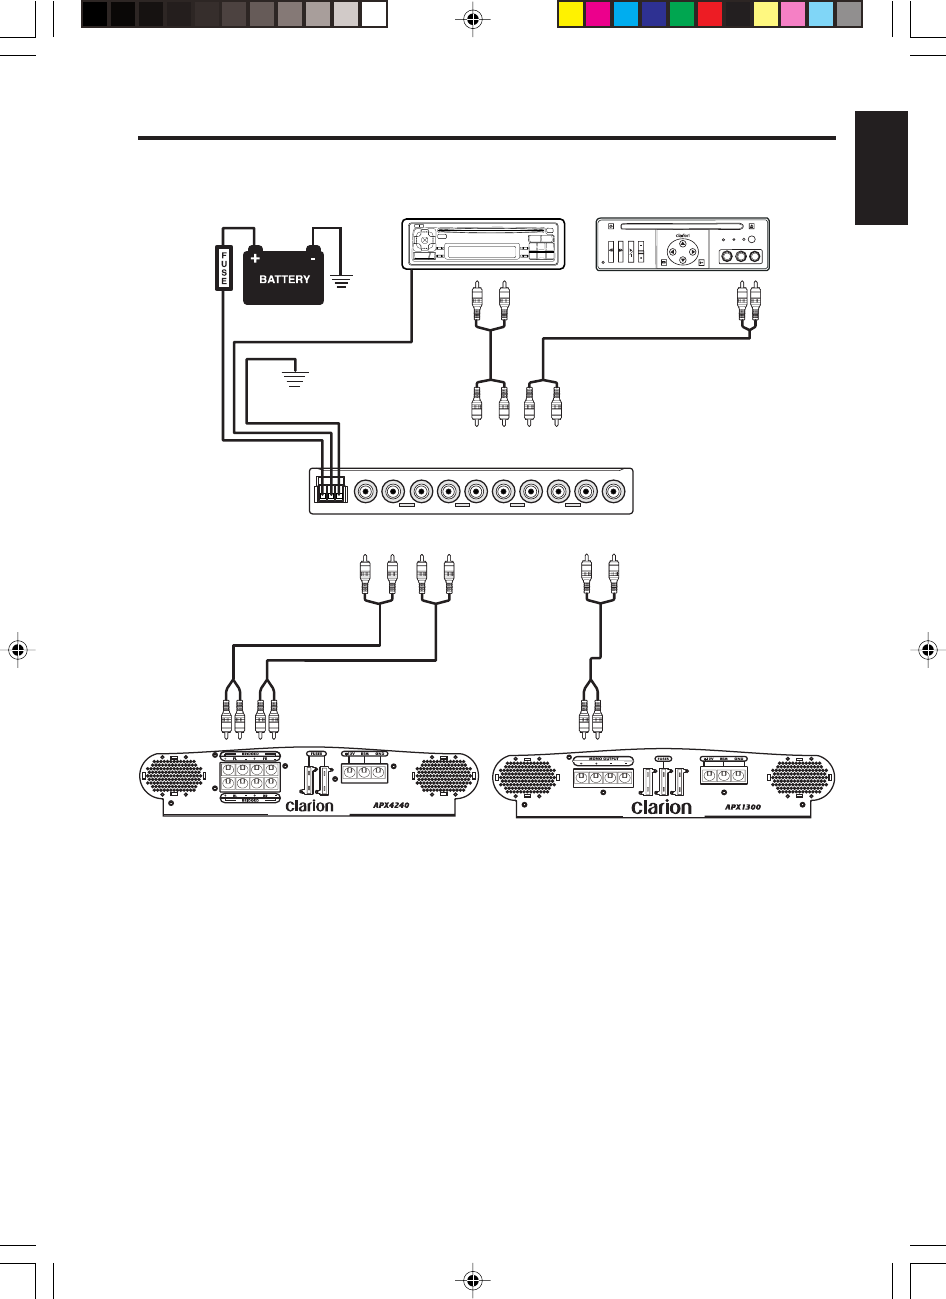 bc1f2d0e 33bf 4e34 095f 10309a34493d bgb page 11 of clarion car stereo system eqs746 user guide clarion eqs746 wiring diagram at readyjetset.co